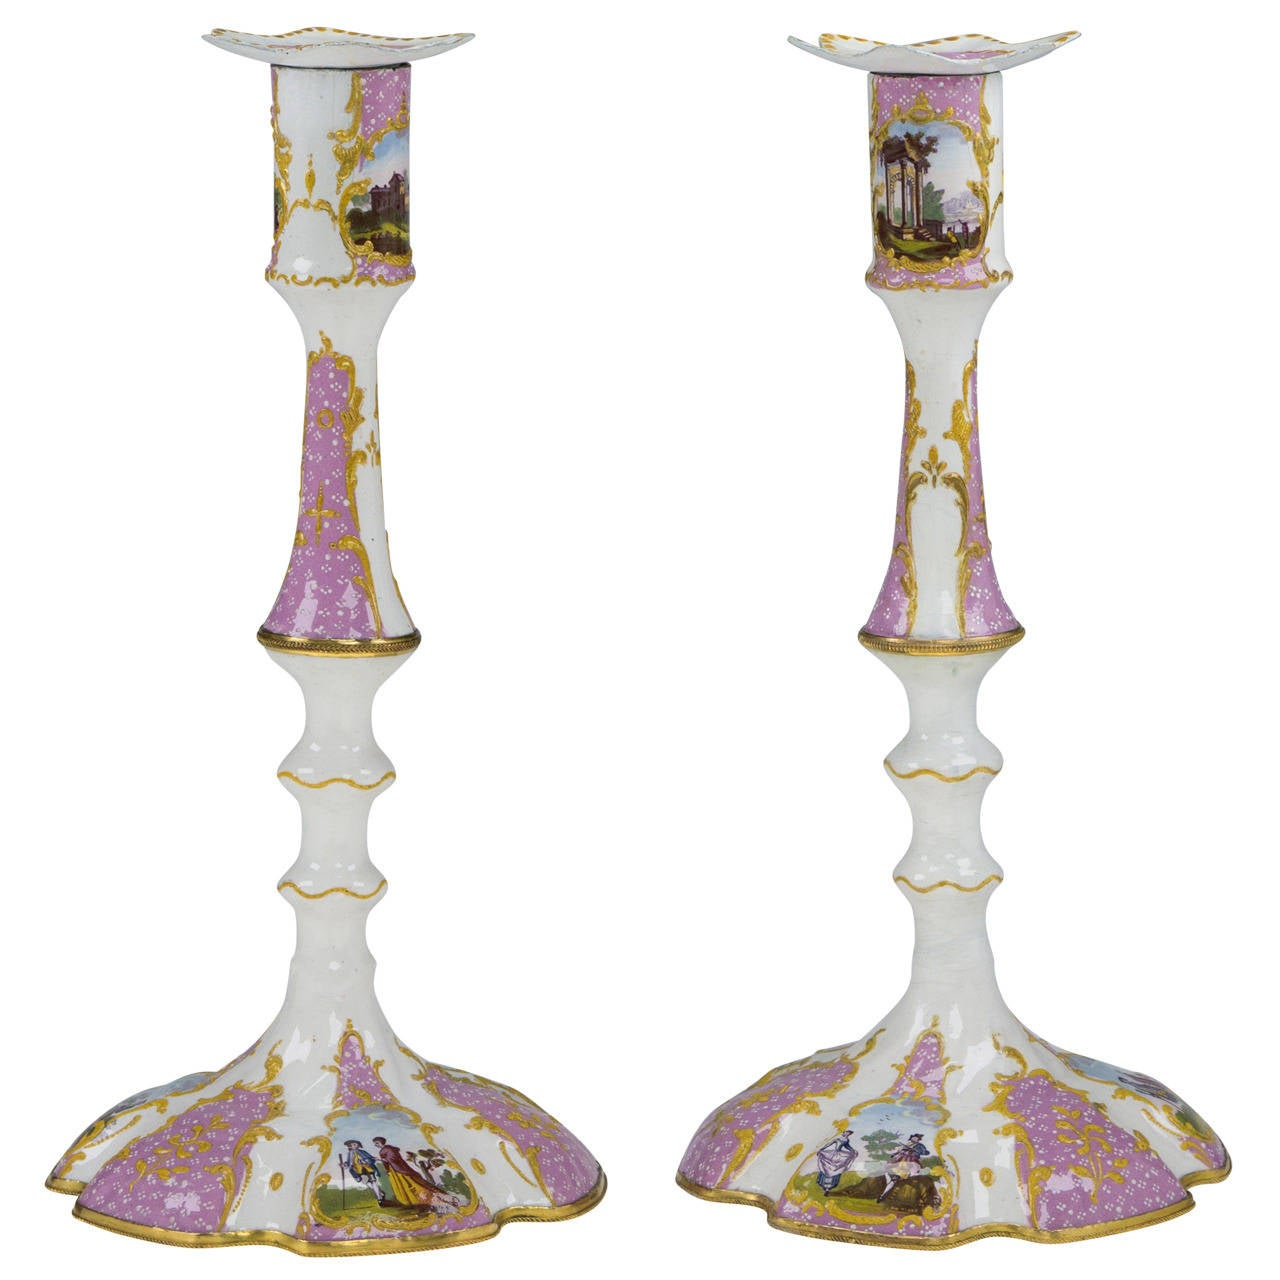 Pair of English Enamel Candlesticks with Rococo Scenes on Pink Ground, 1780 For Sale